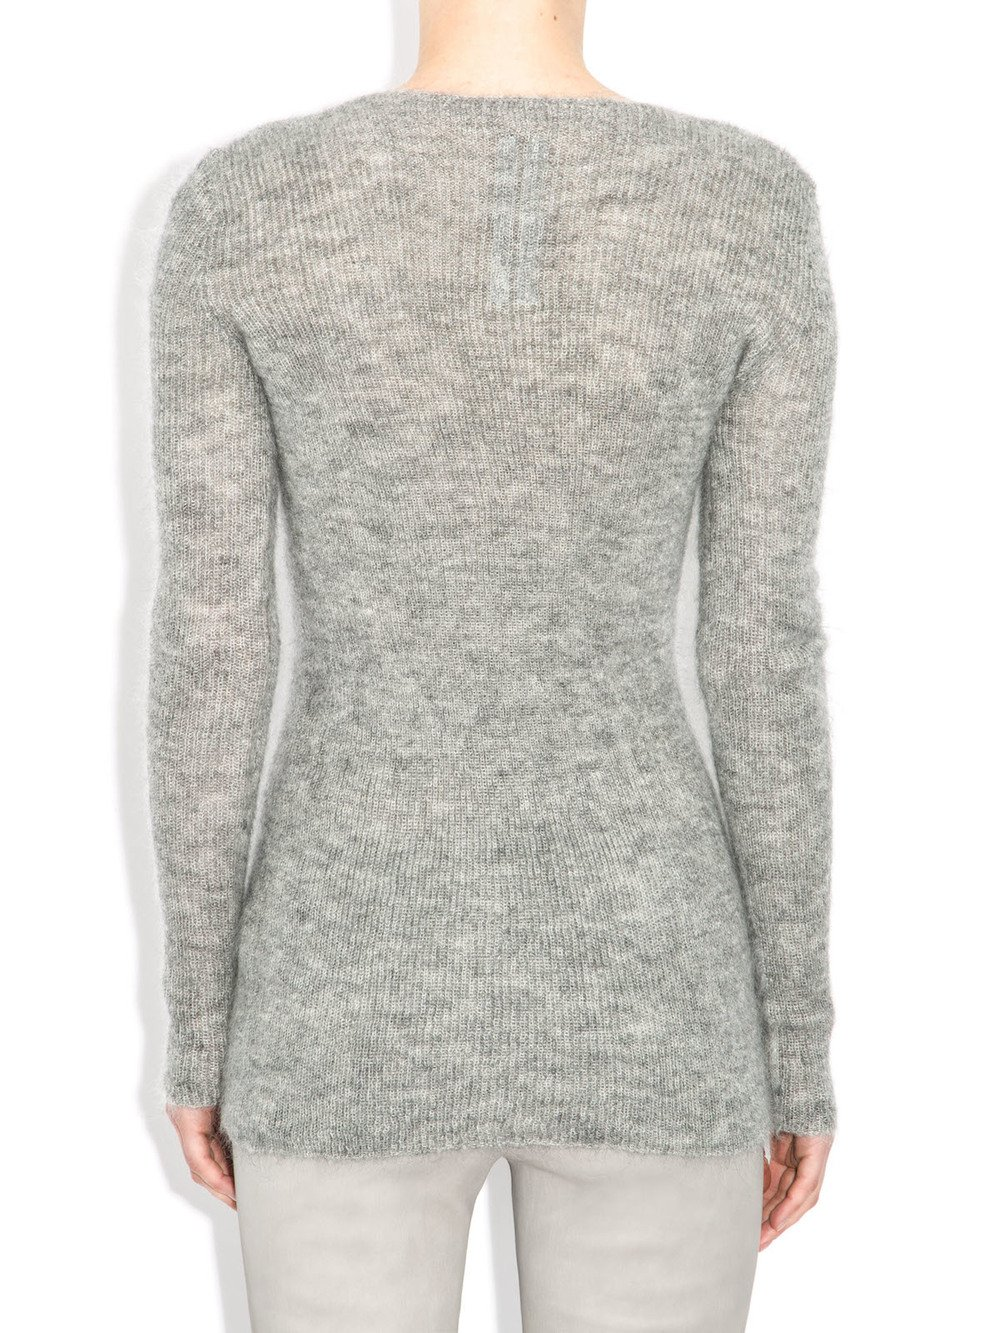 grey v neck sweater